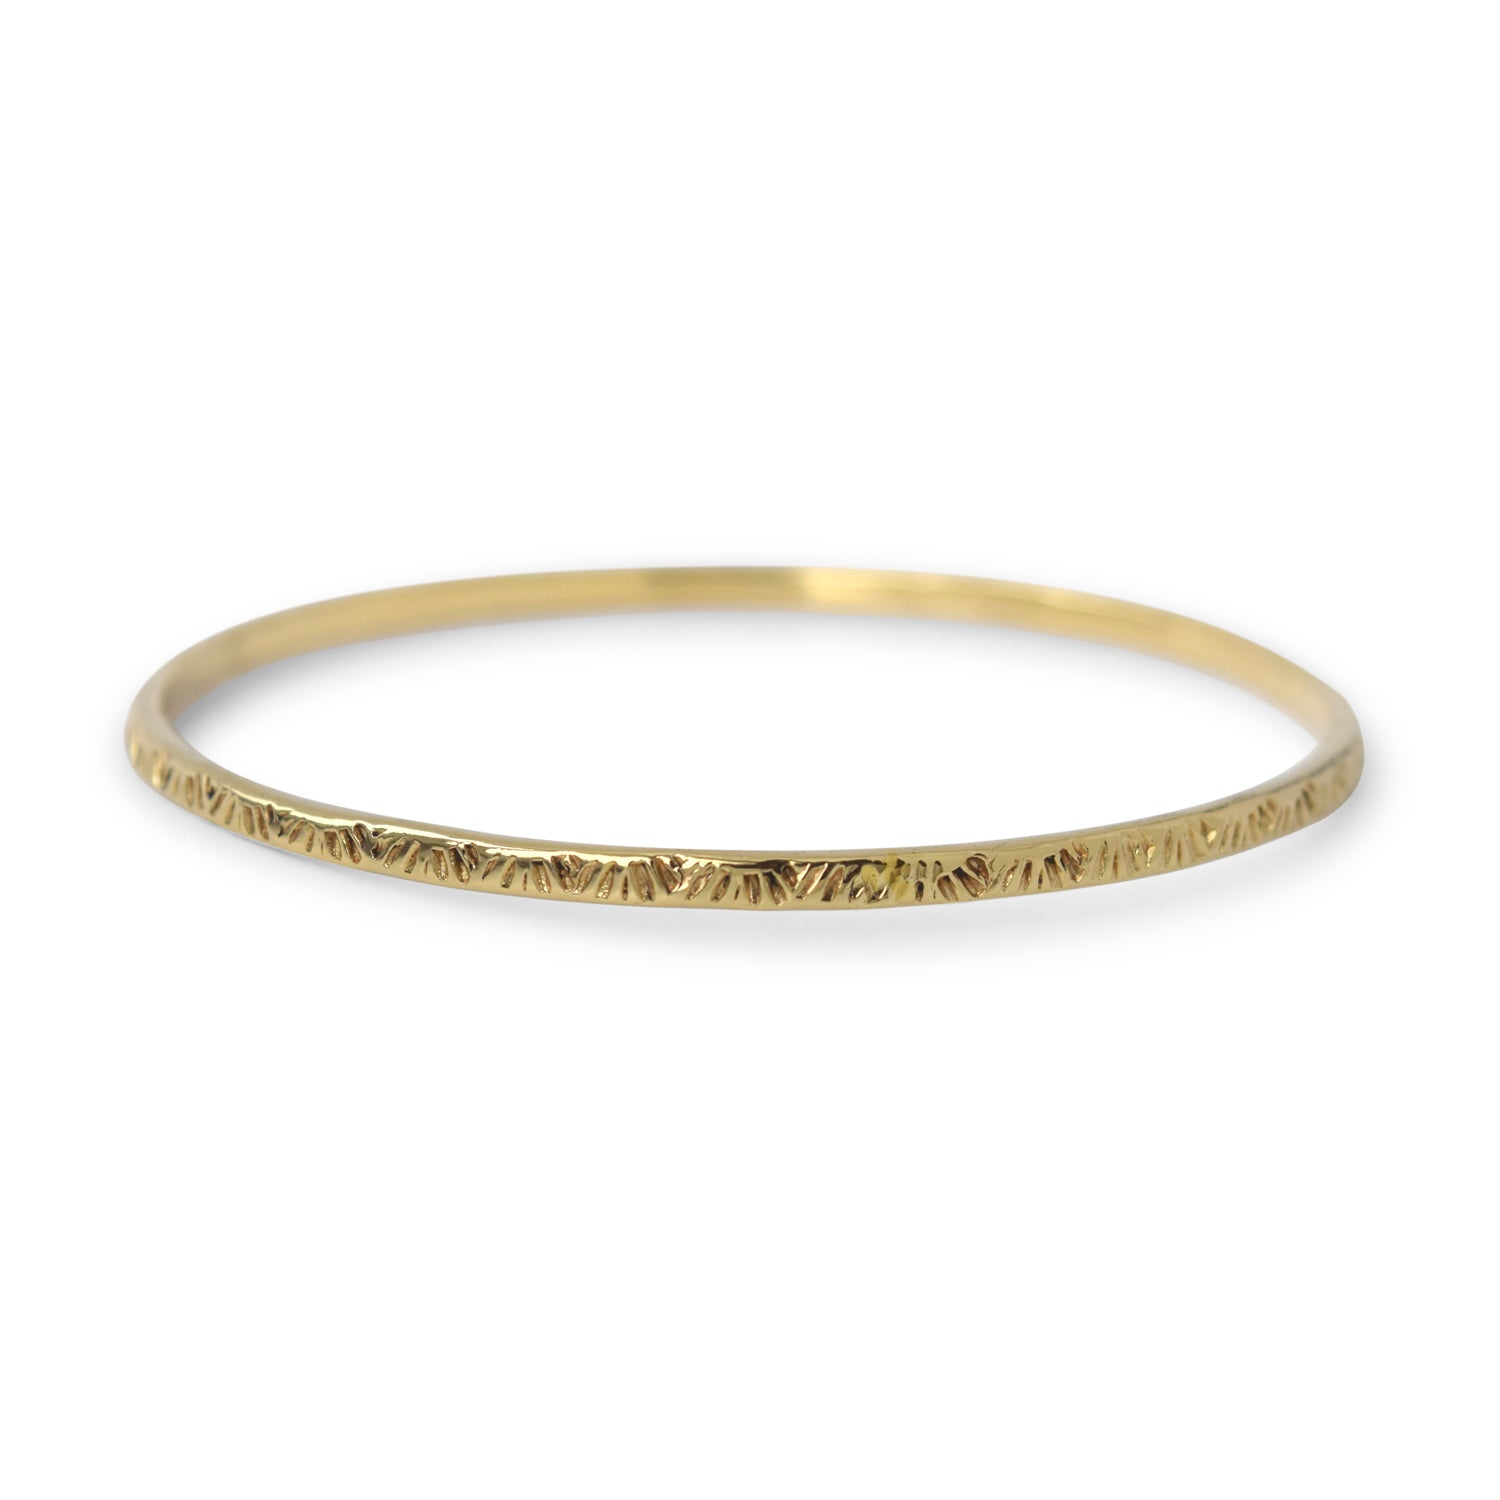 Naveen Bangle Bracelet - Lissa Bowie